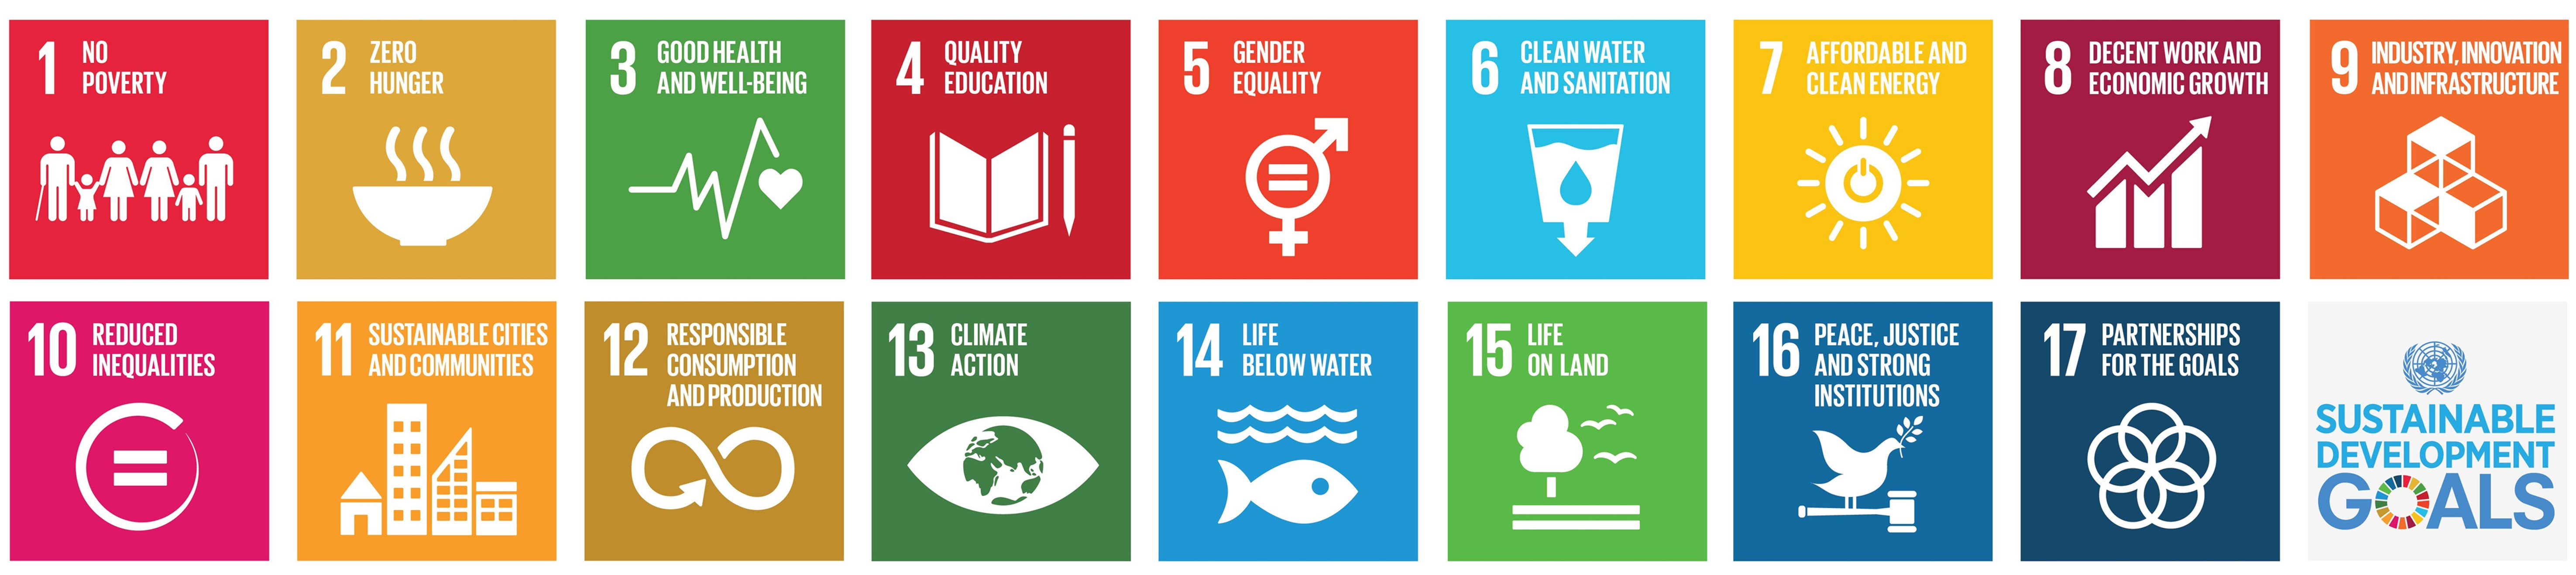 SDG icons and logo